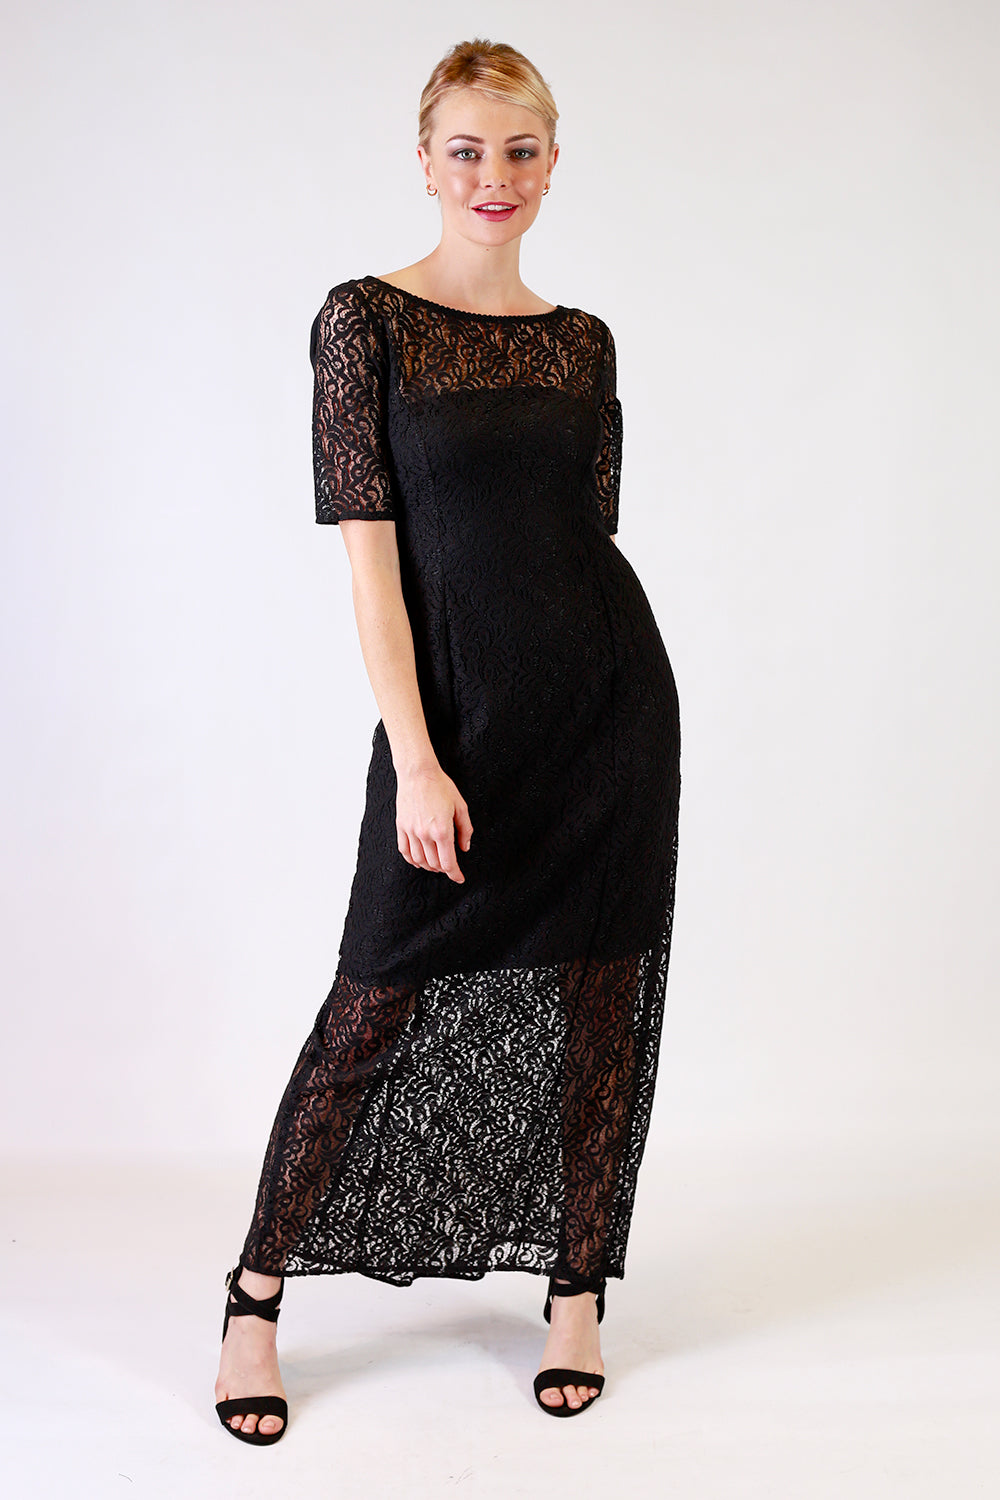 Tatiana Dress | Lace Dress | Affordable Designer Dress | Annah Stretton